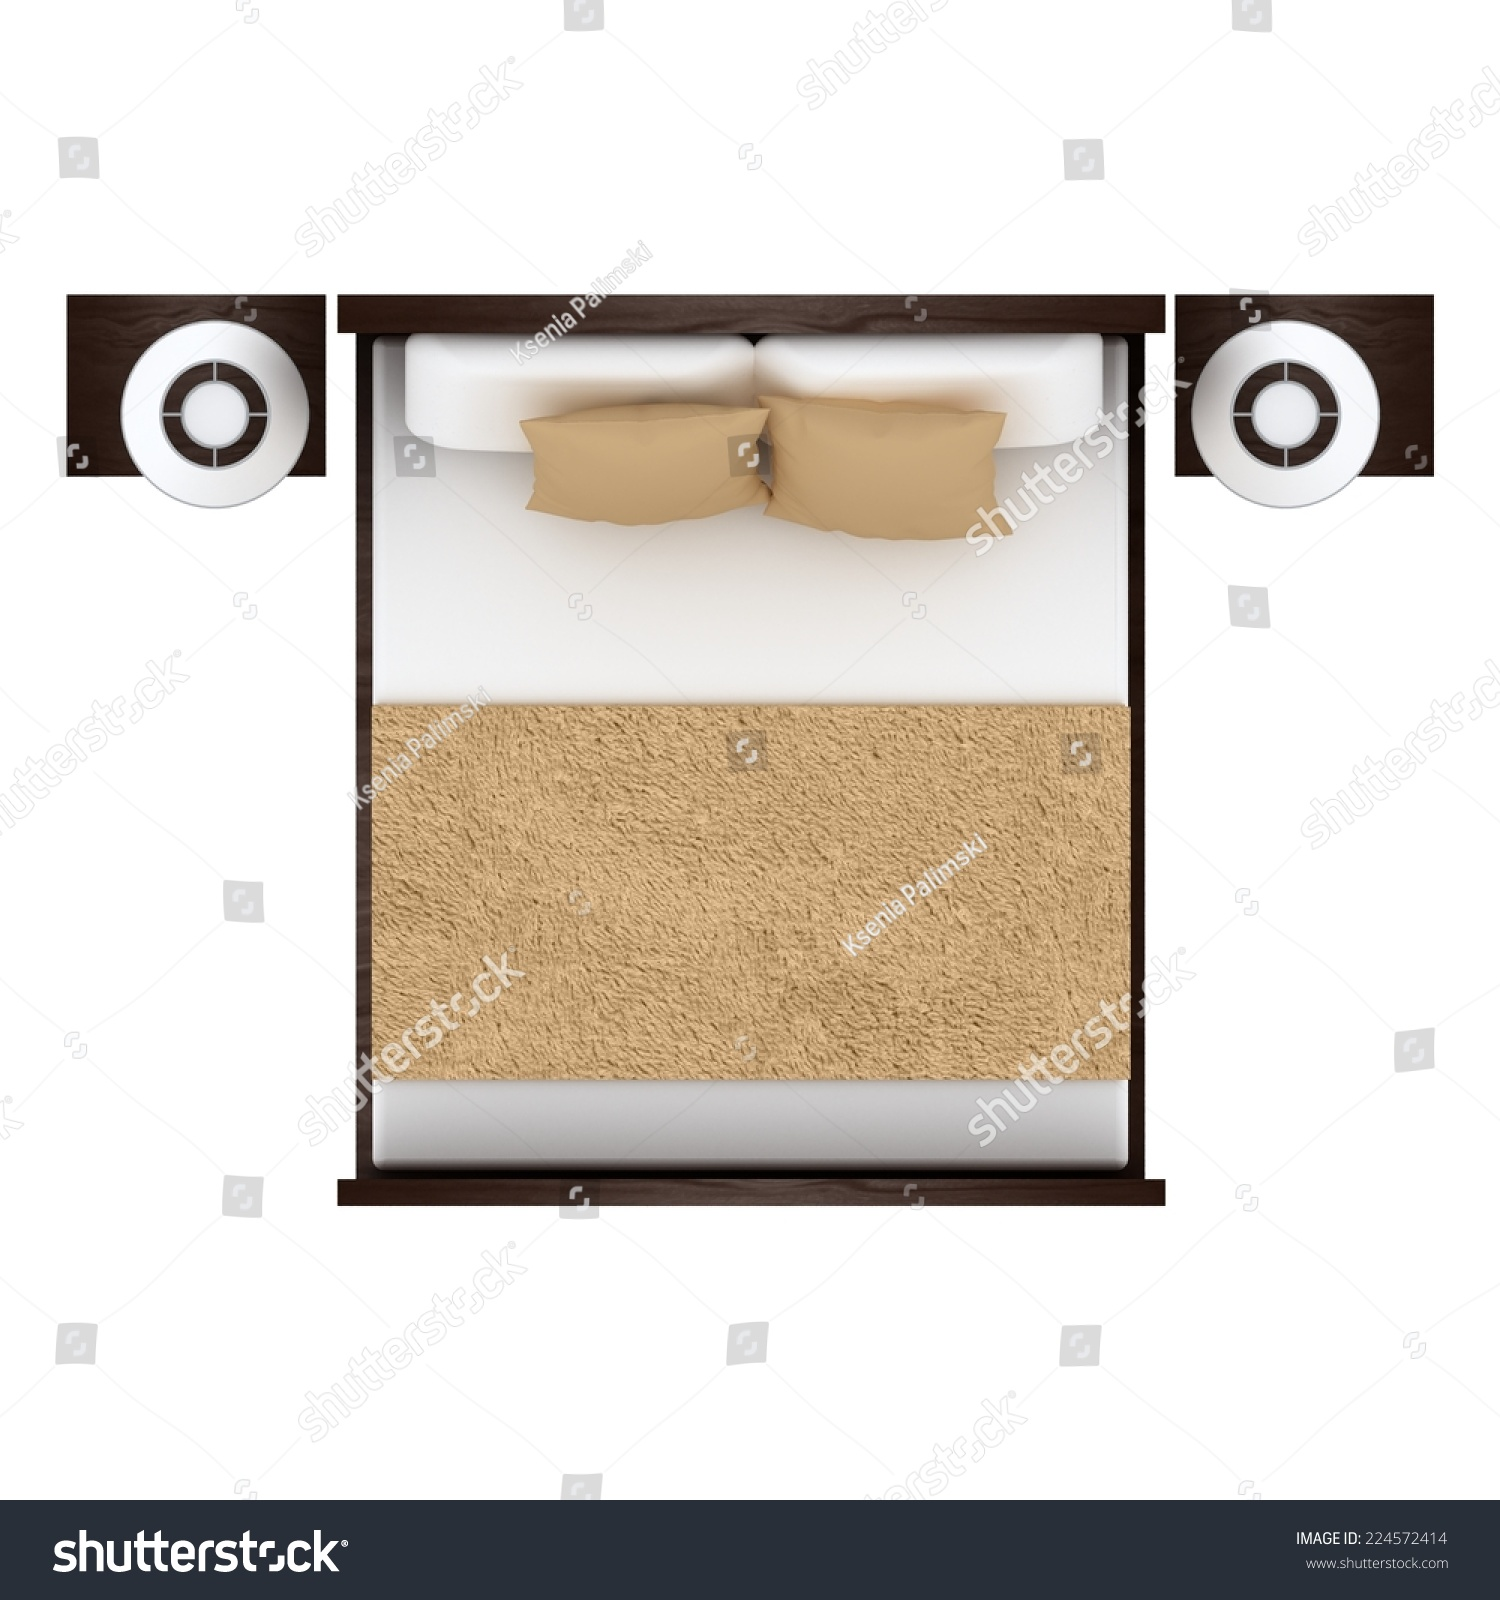 White Bed Top View - Bed top view isolated on white background